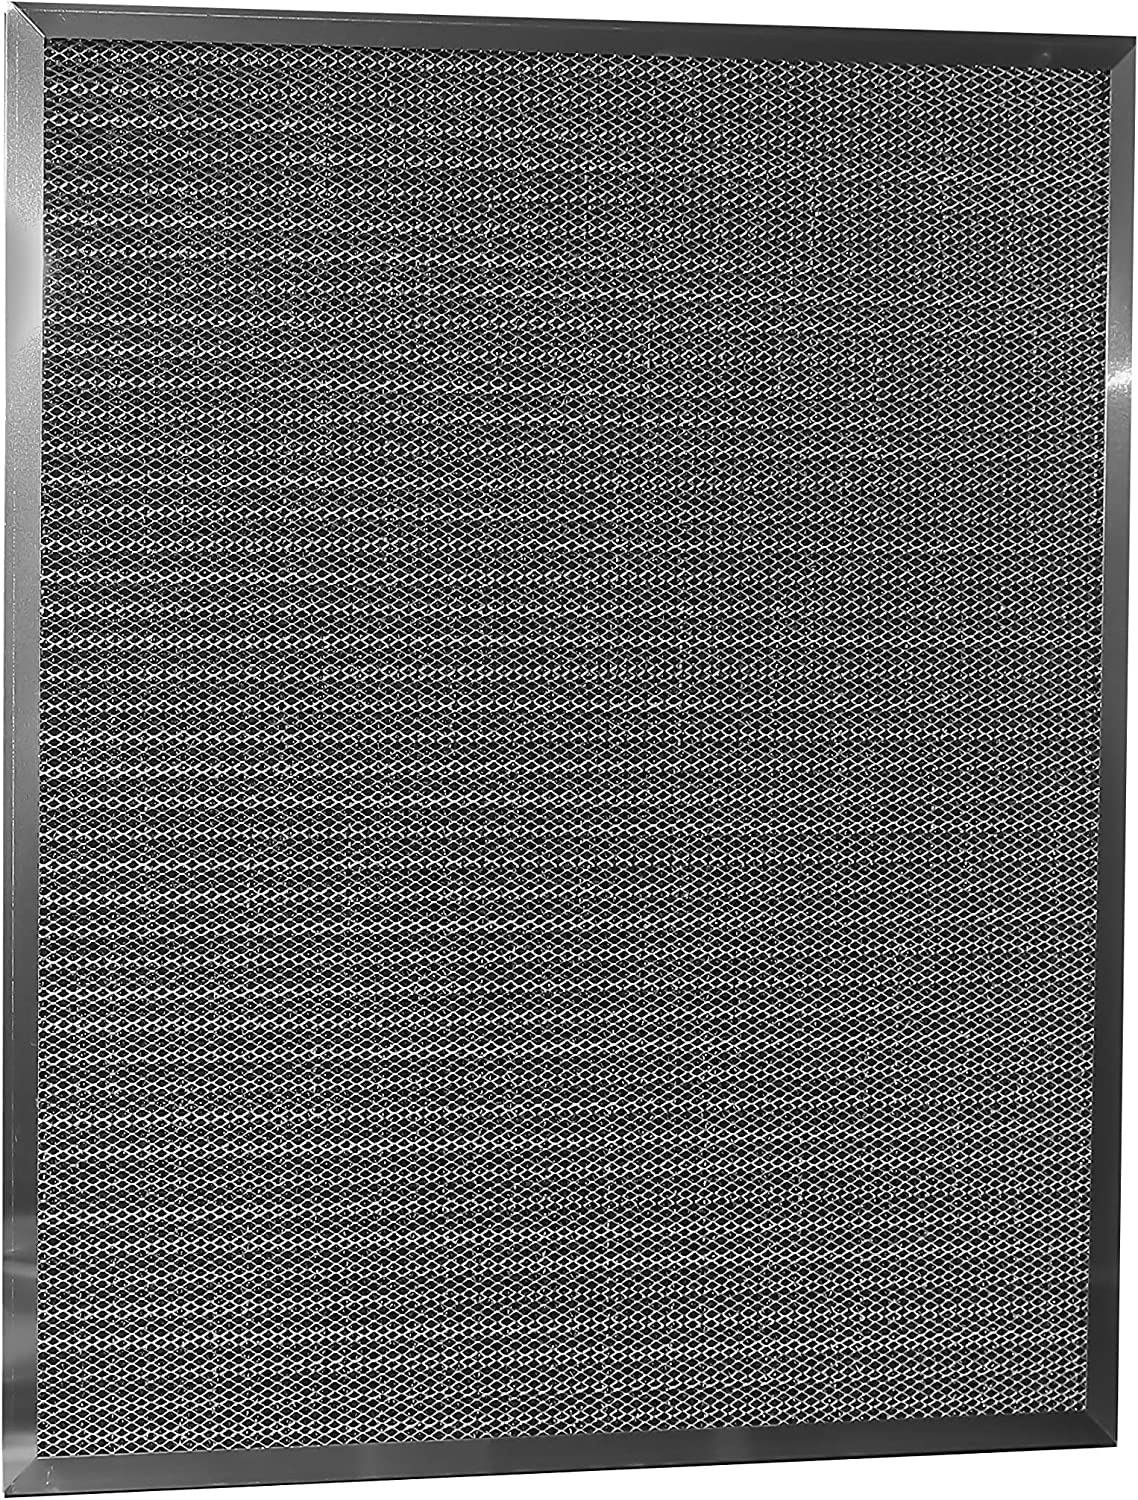 (24x30x1) Aluminum Electrostatic Air Filter Replacement Washable Air Purifier A/C Filter for Central HVAC – Improve airflow & Furnace longevity by LifeSupplyUSA